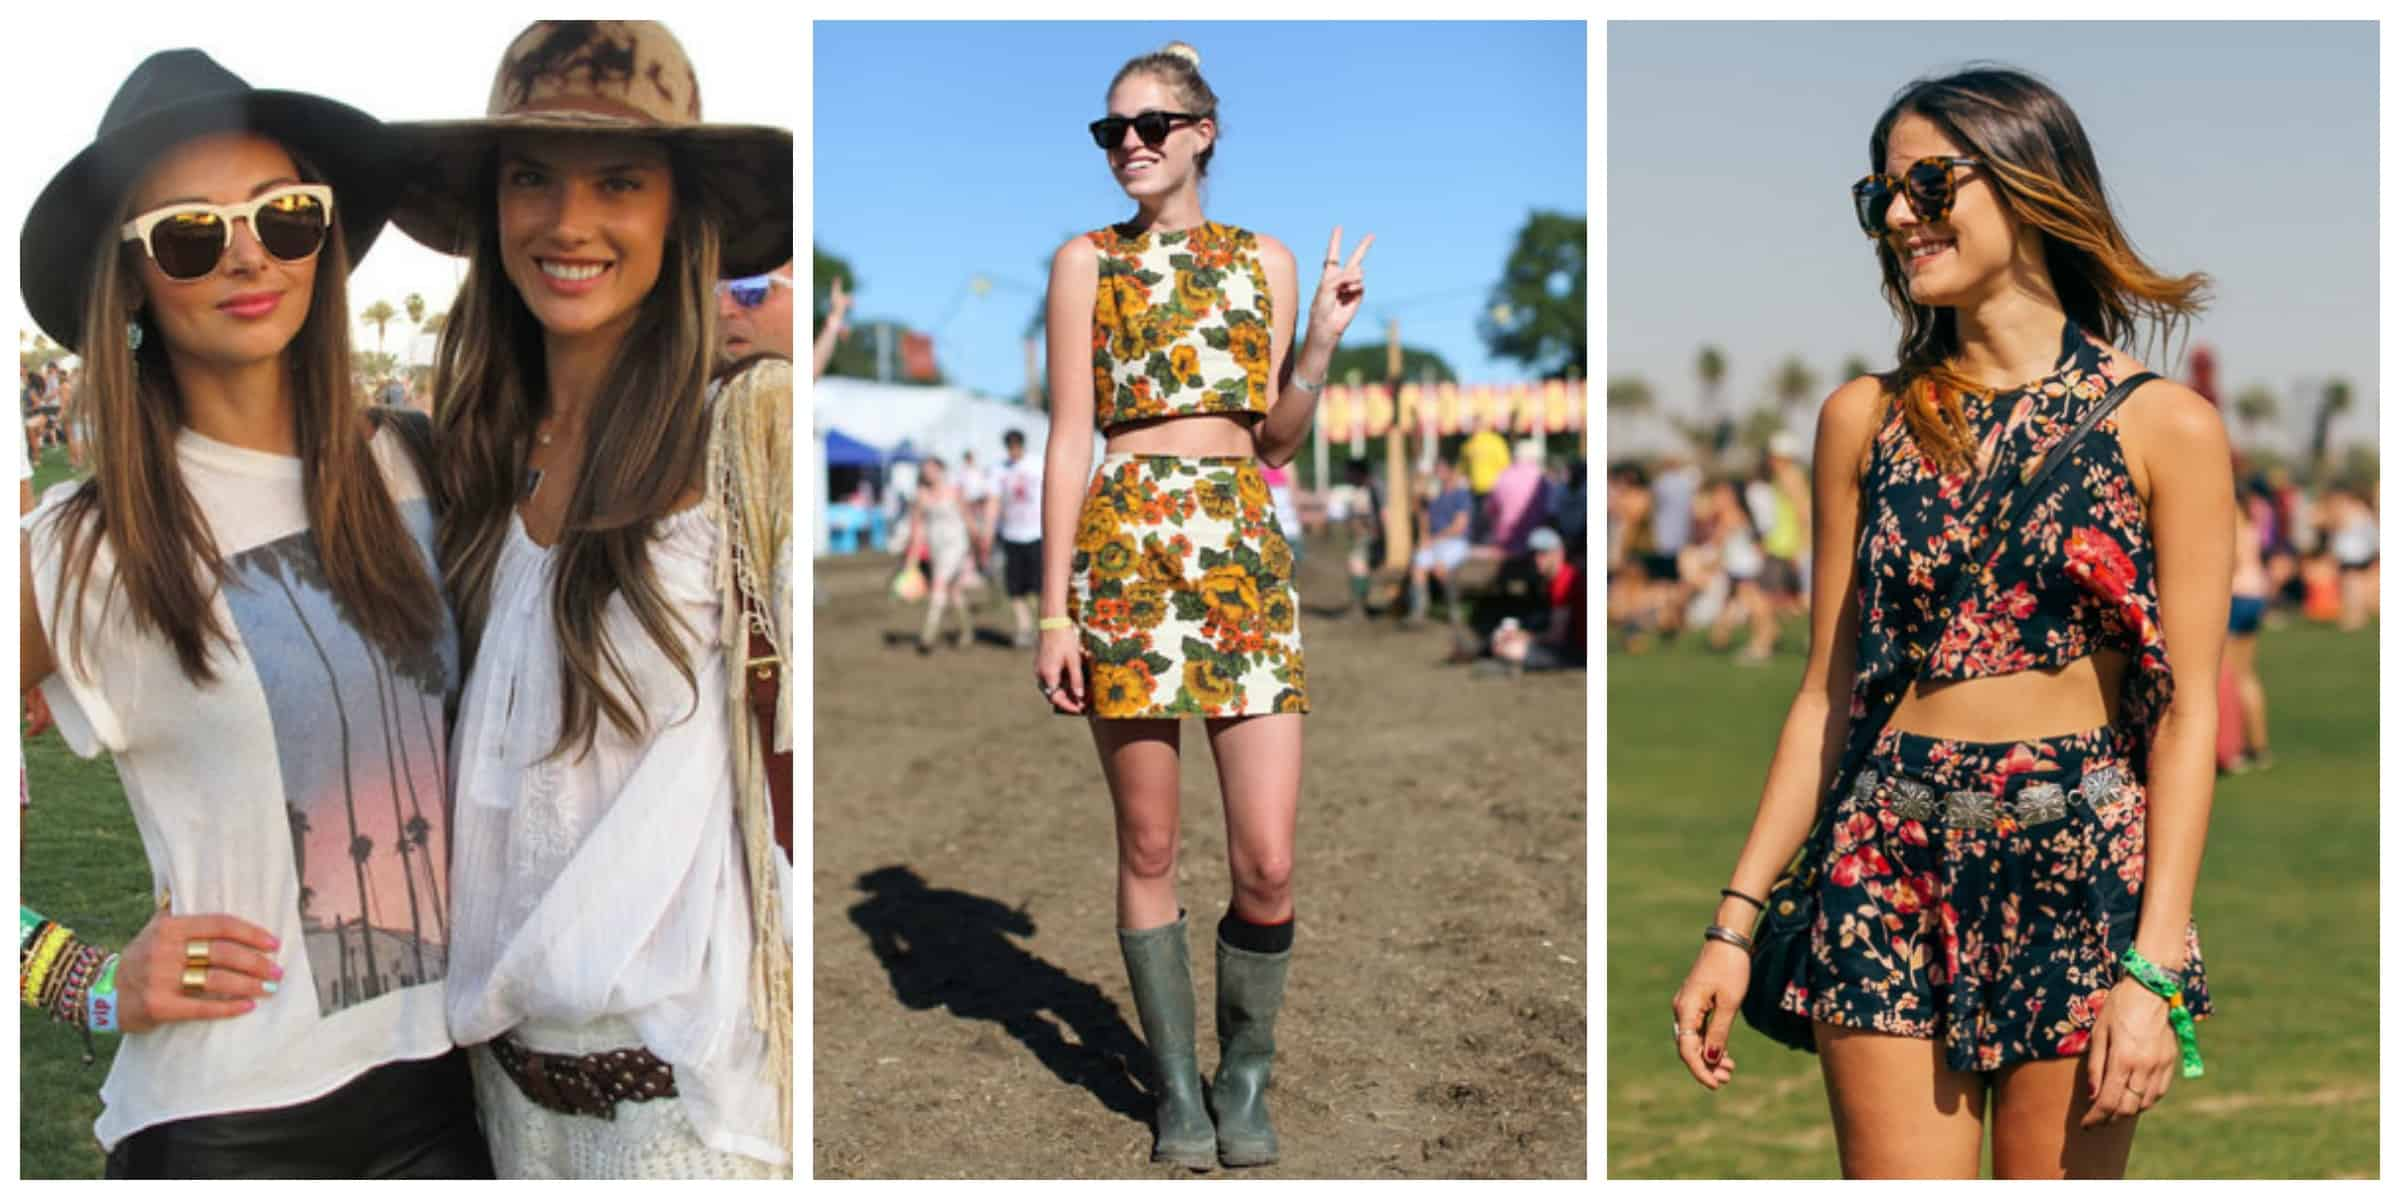 How To Dress At Summer Music Festivals The Fashion Tag Blog